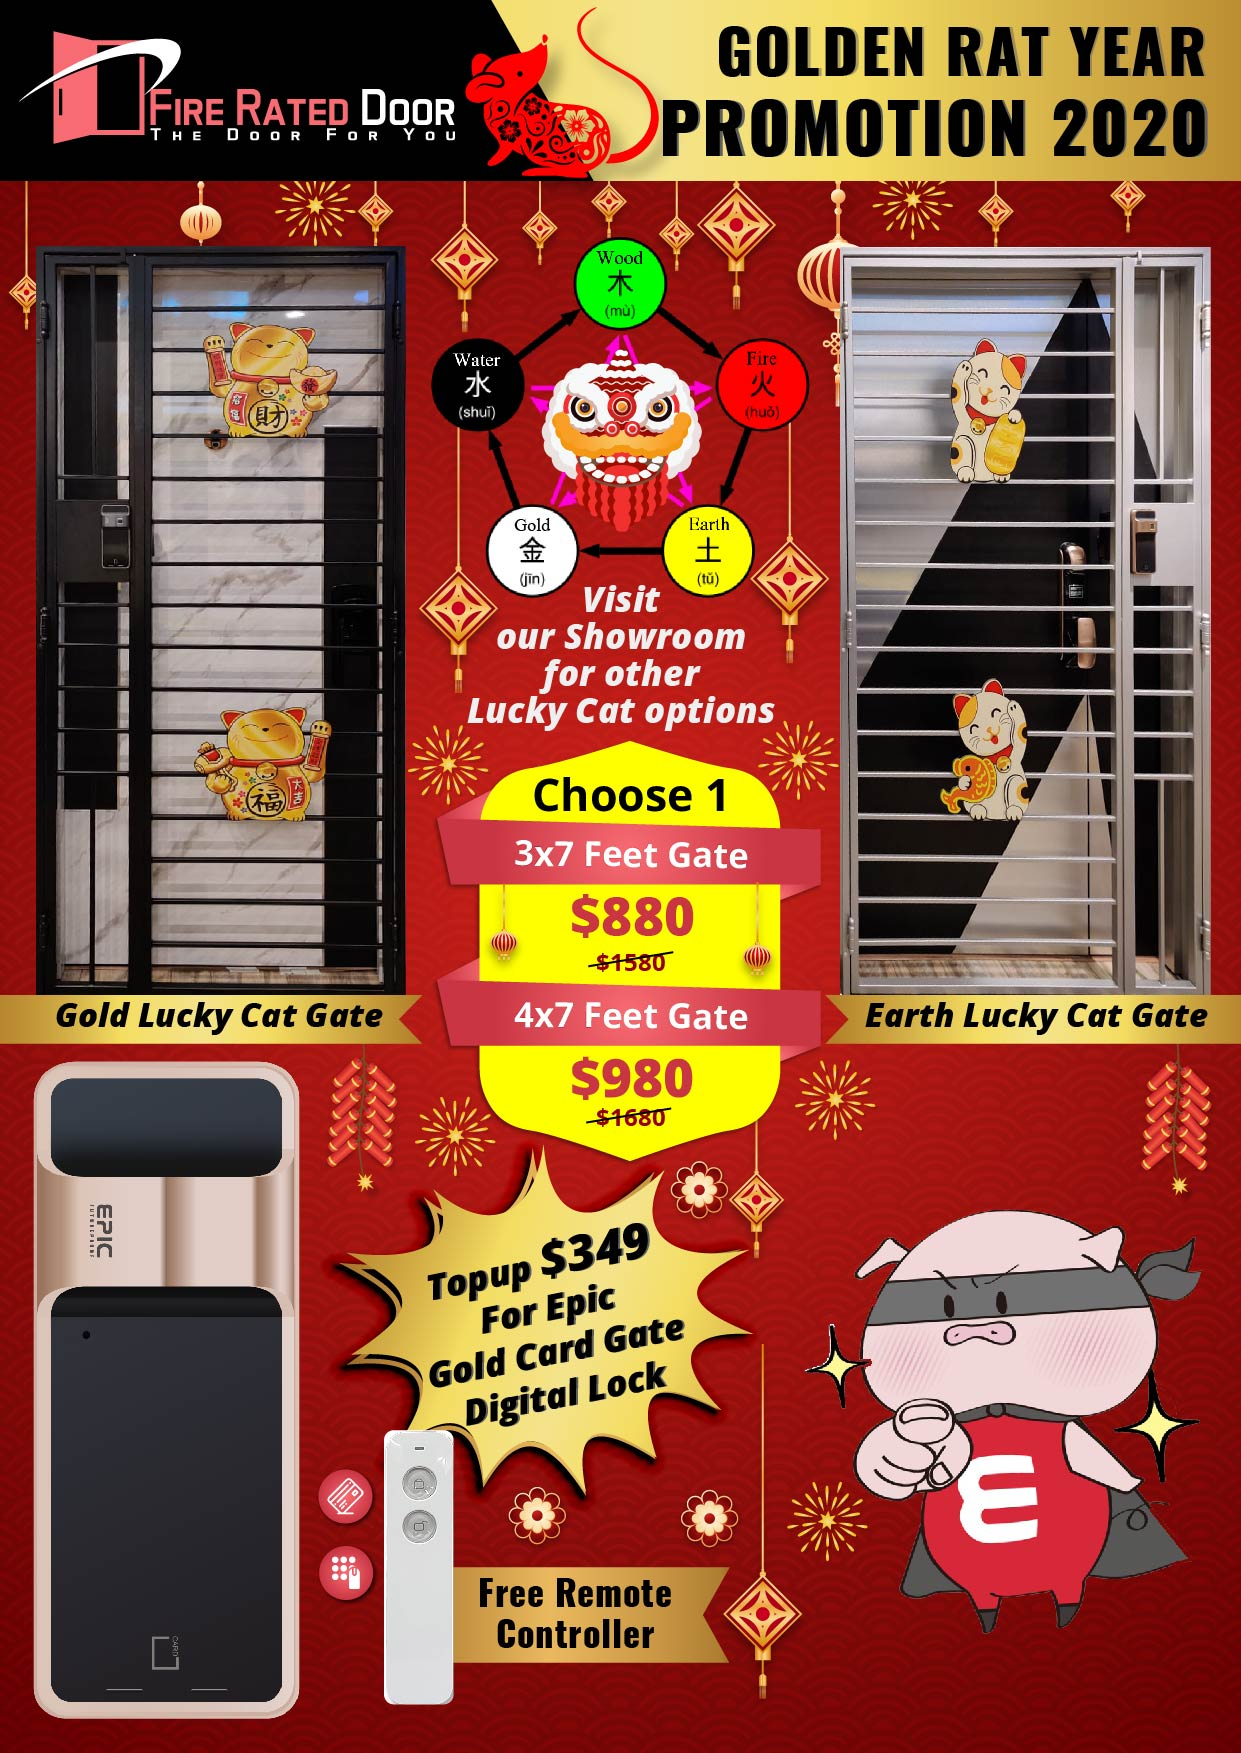 Gold Lucky Cat Gate